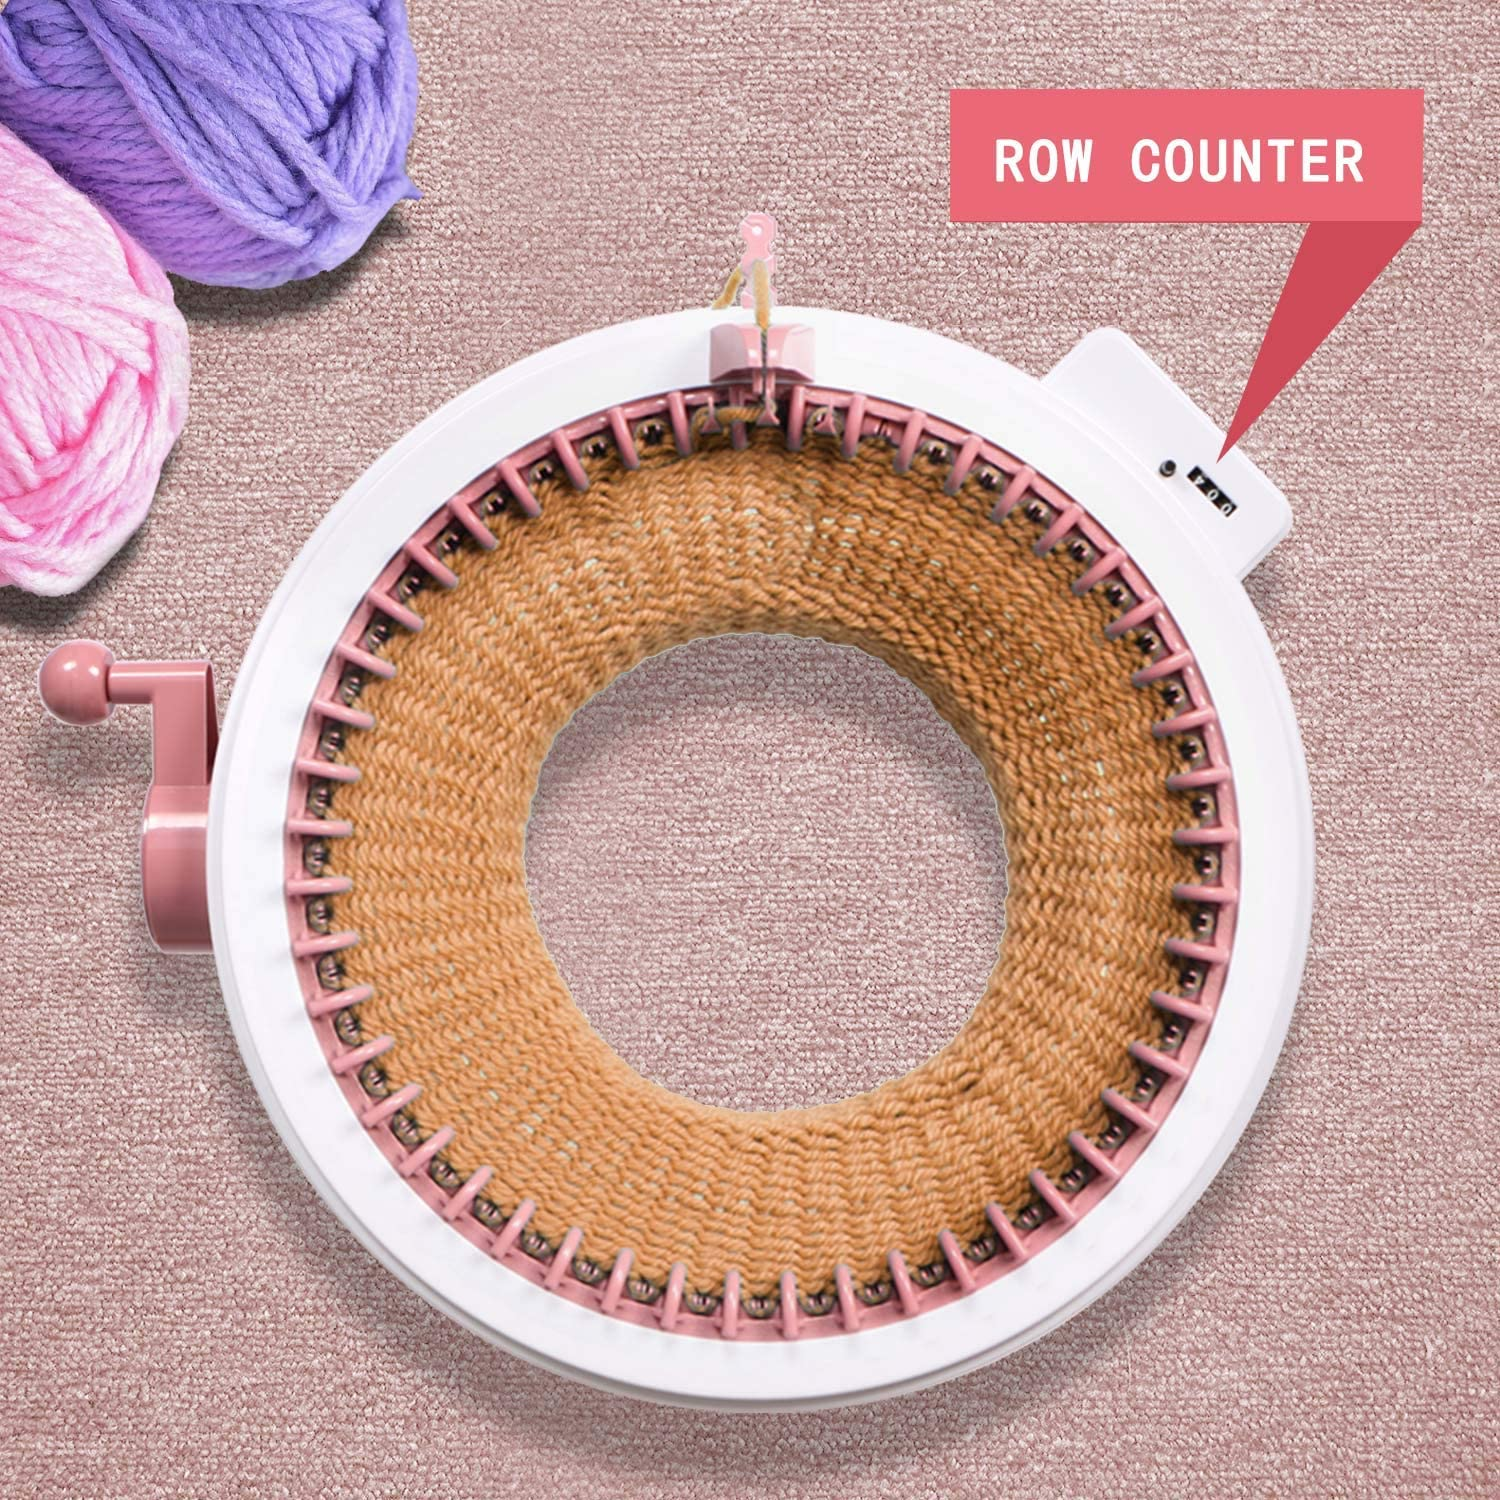 48 Needles Smart Weaving Loom Round Knitting Machines Knitting Machine with Row Counter Weaving Loom for Adults or Kids Knitting Board Rotating Double Knit Loom for Sock//Hat